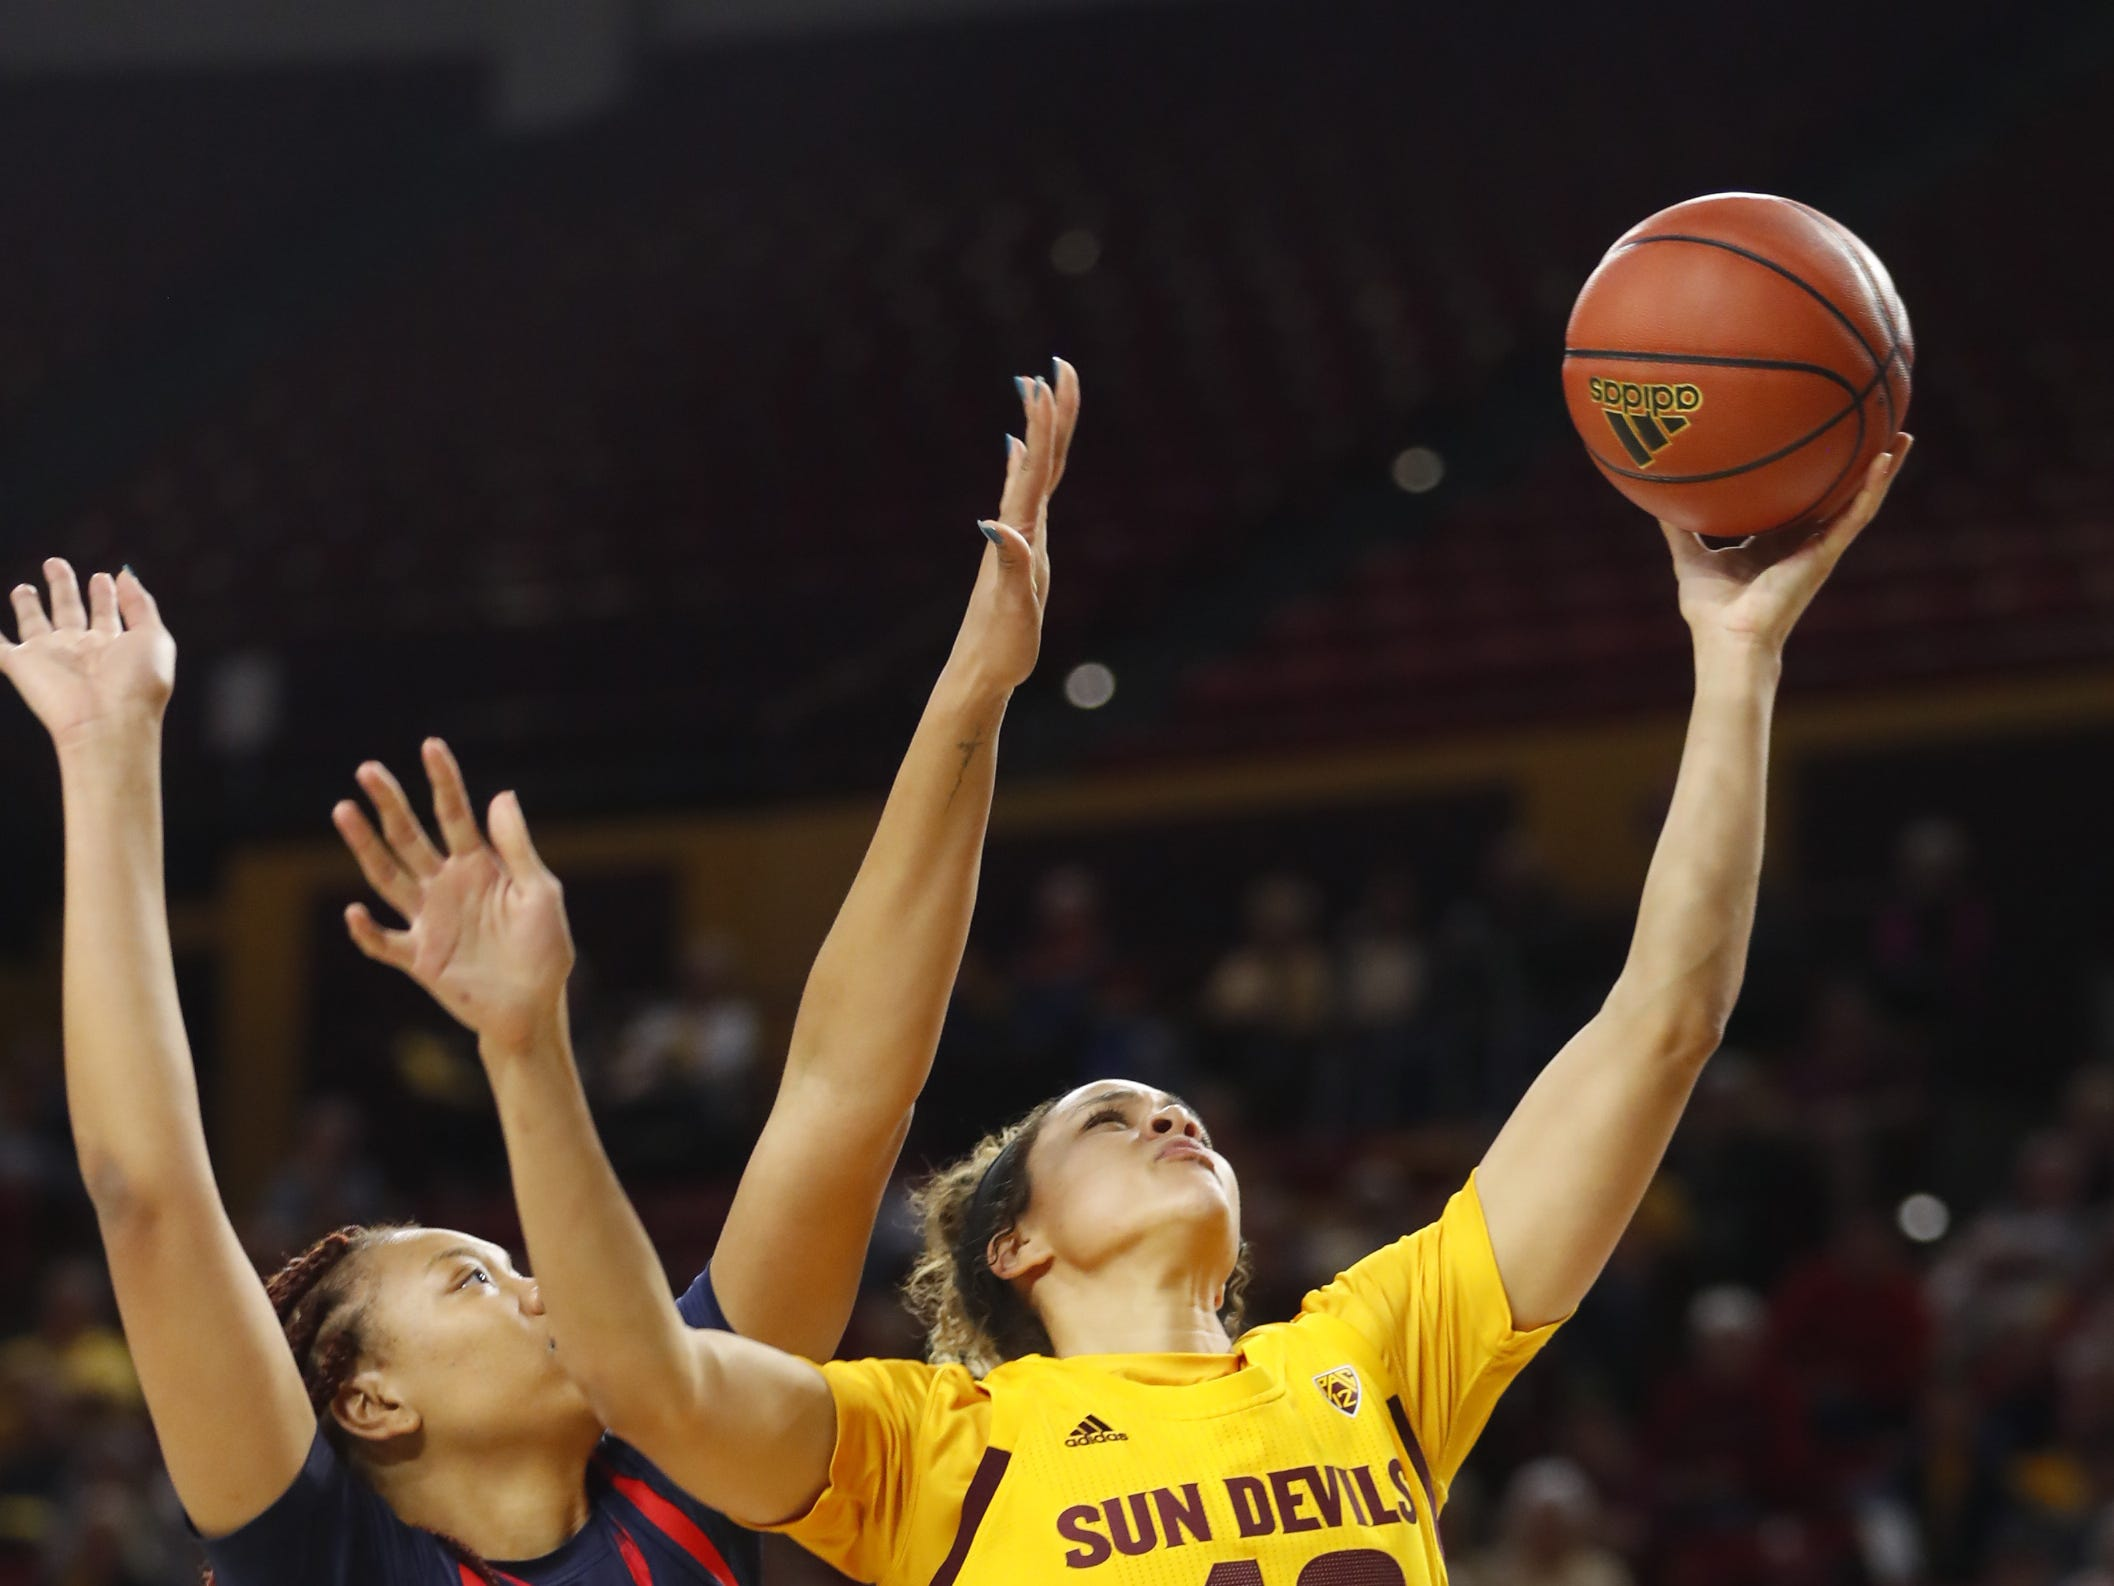 ASU's Kianna Ibis (42) makes a layup against Arizona's Semaj Smith (34) during the second half at Wells Fargo Arena in Tempe, Ariz. on February 1, 2019.